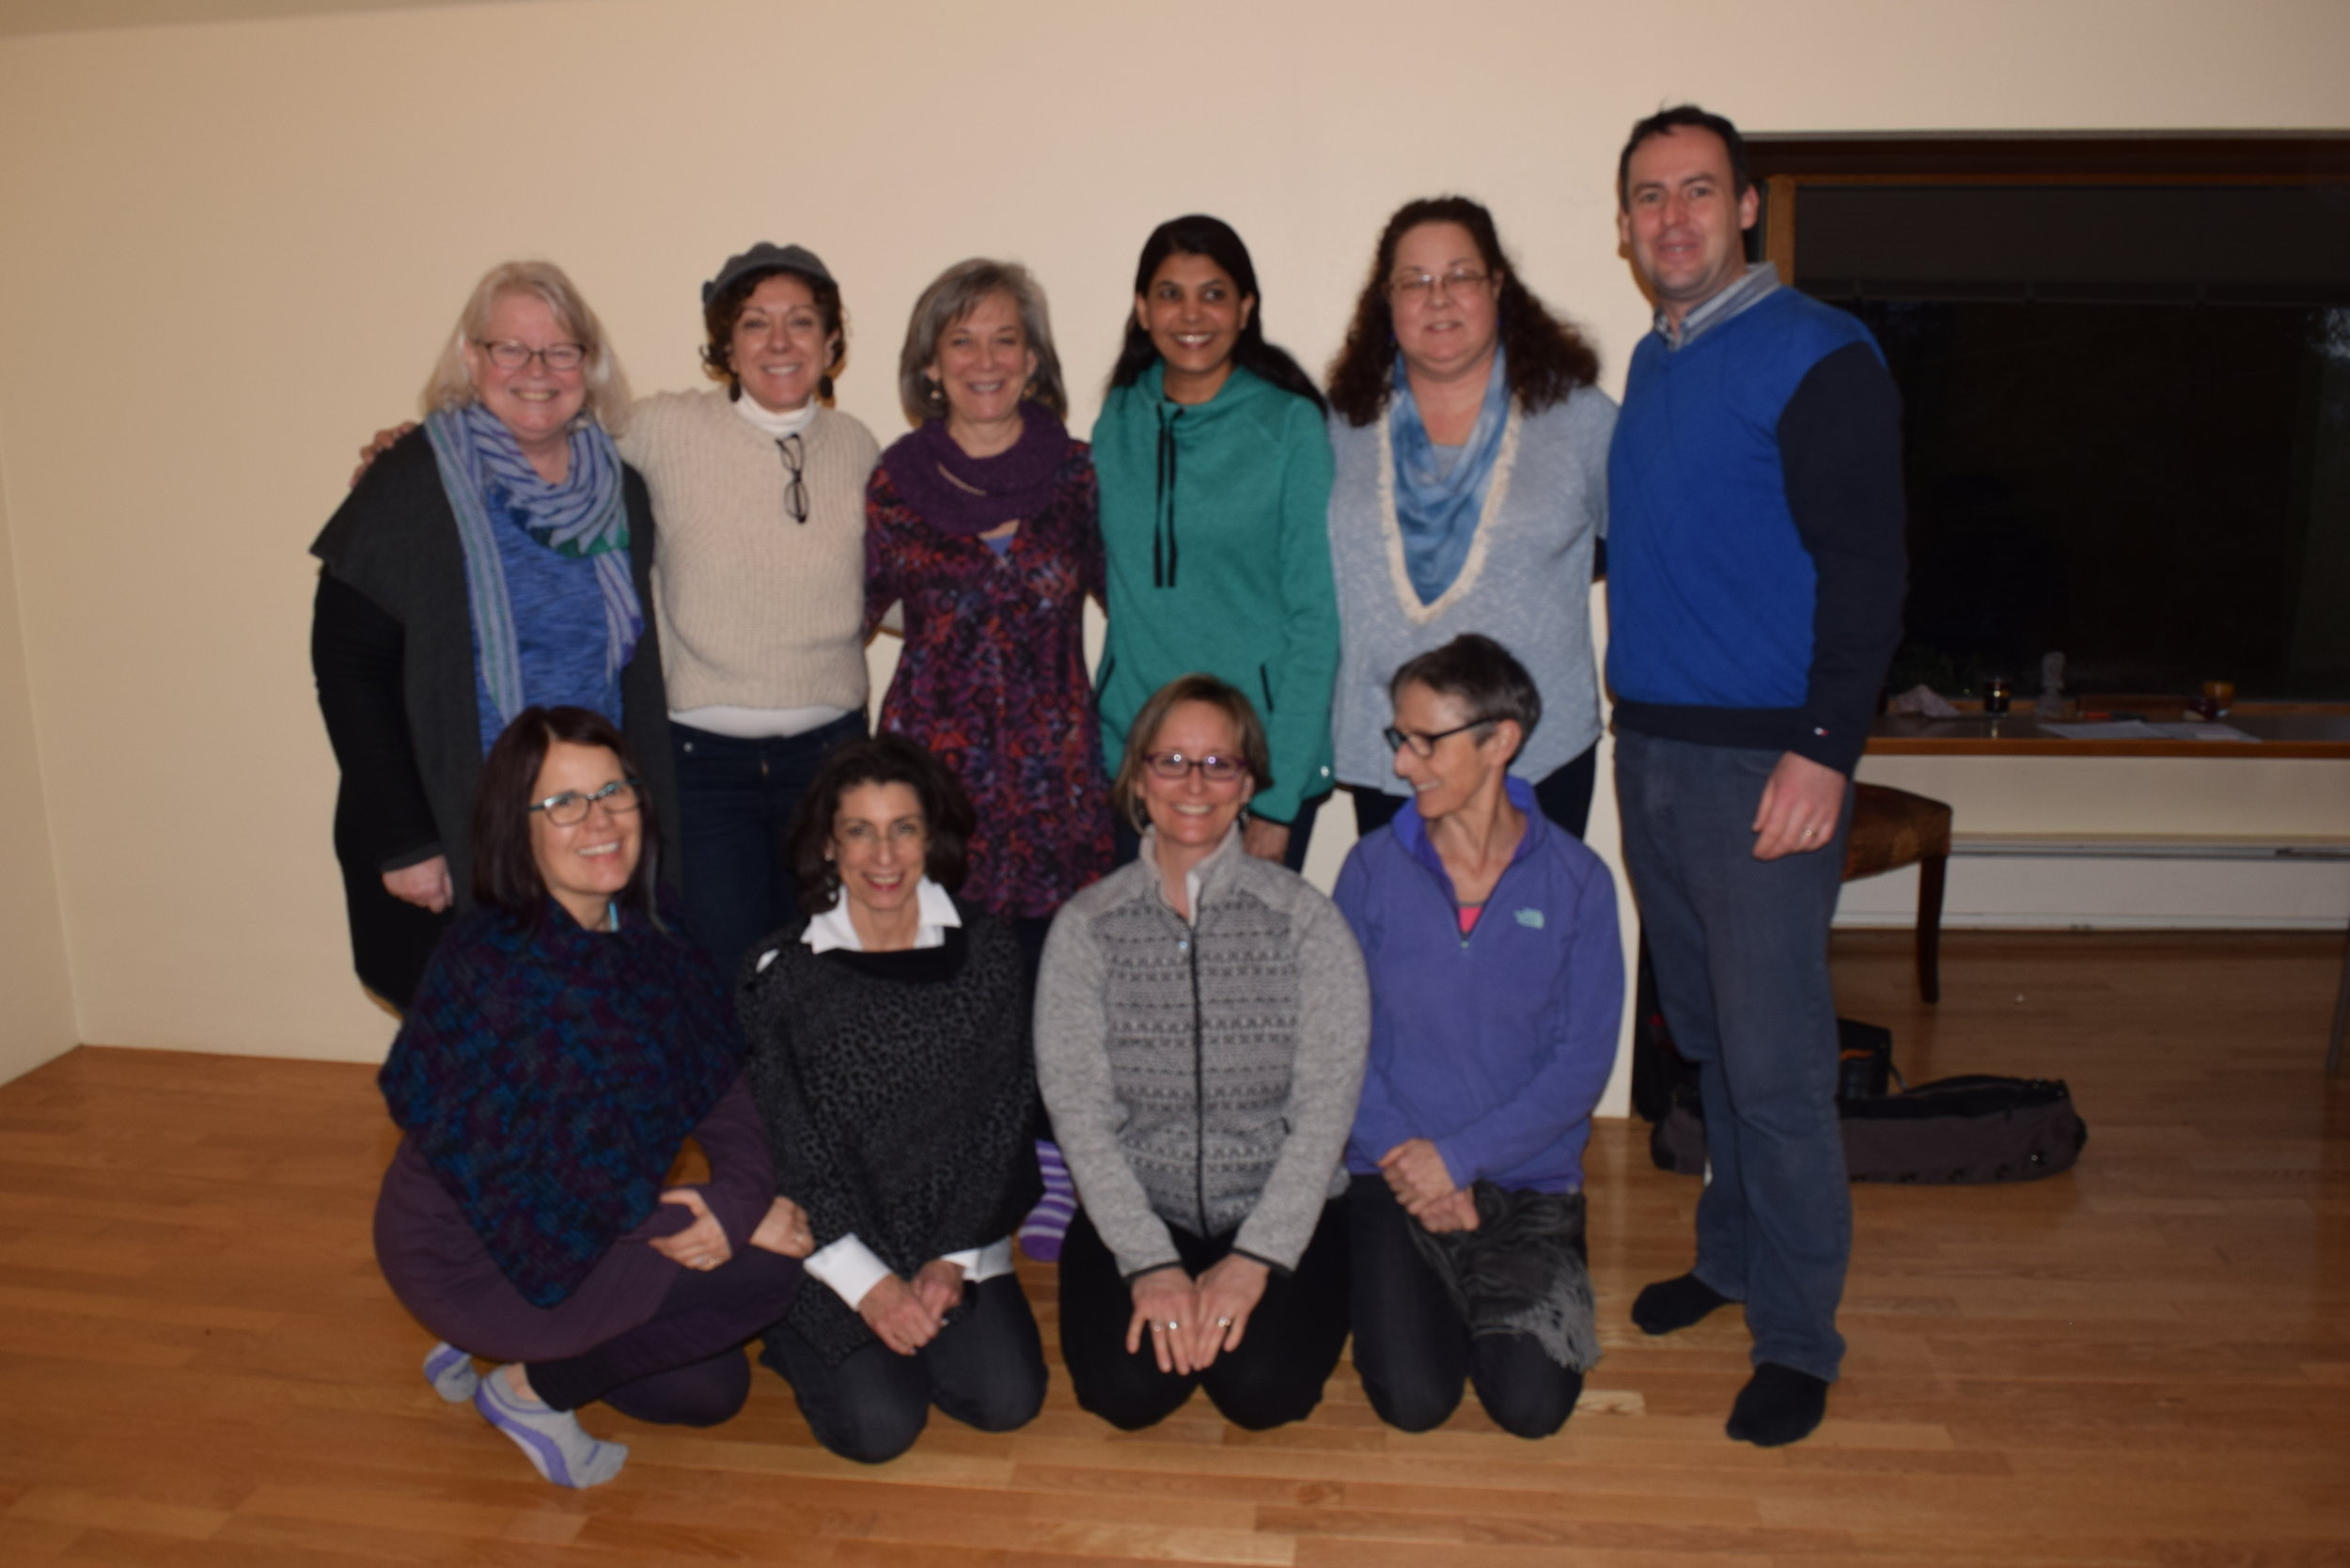 Patrick McKeown and the graduates of the 2017 Buteyko Certificate program at Essential Yoga Therapy's Fall City studio.